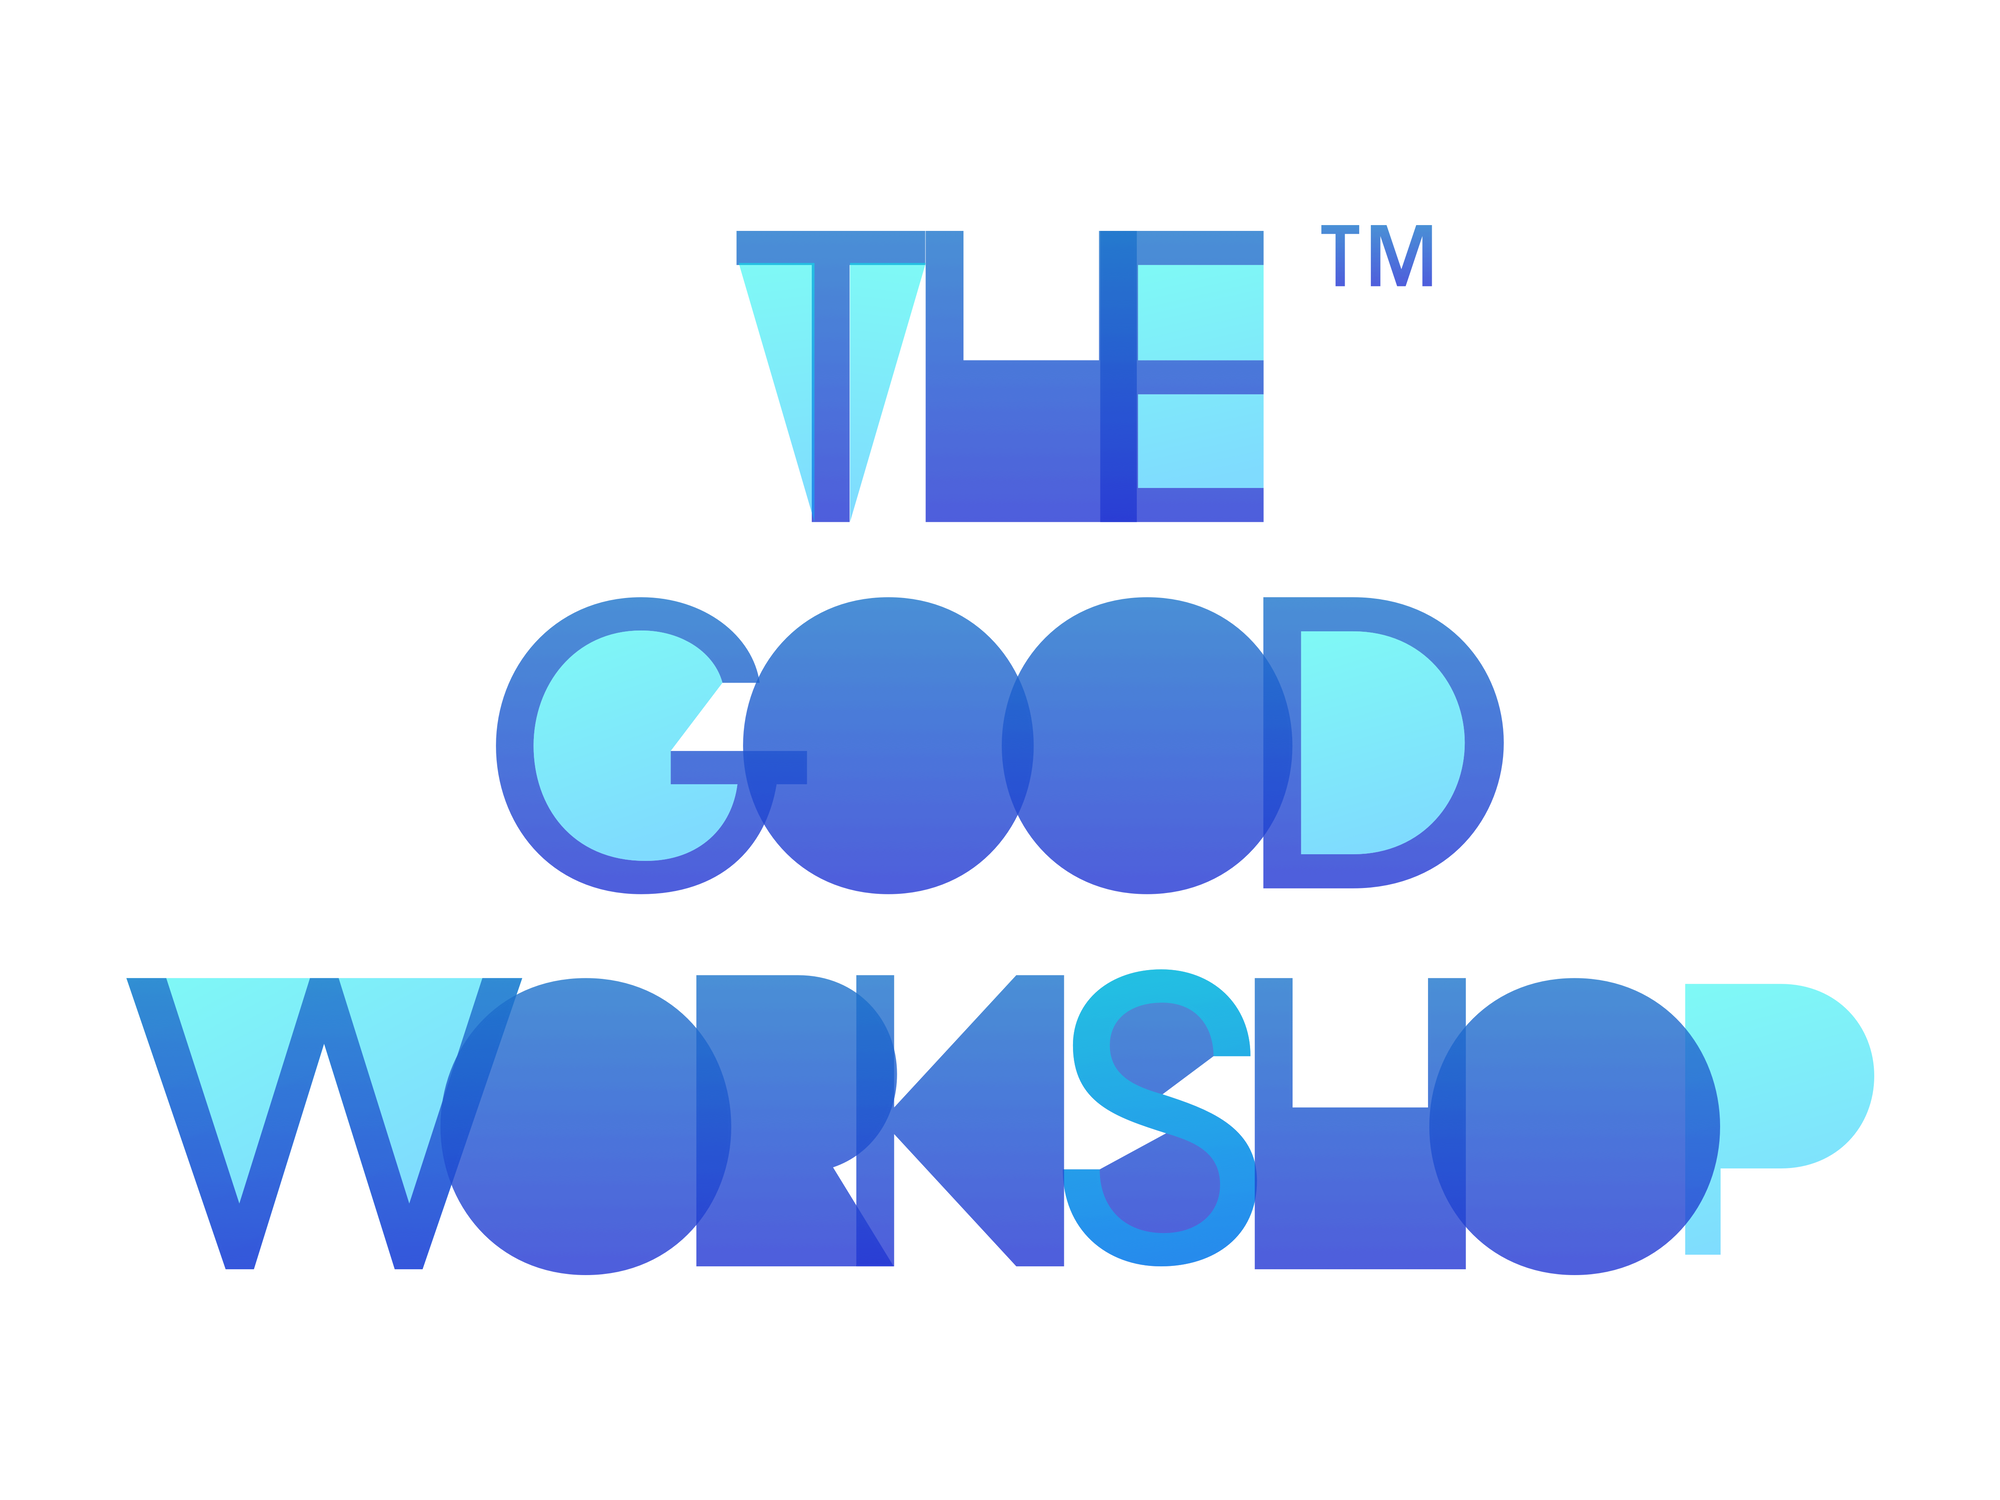 The Good Workshop logo